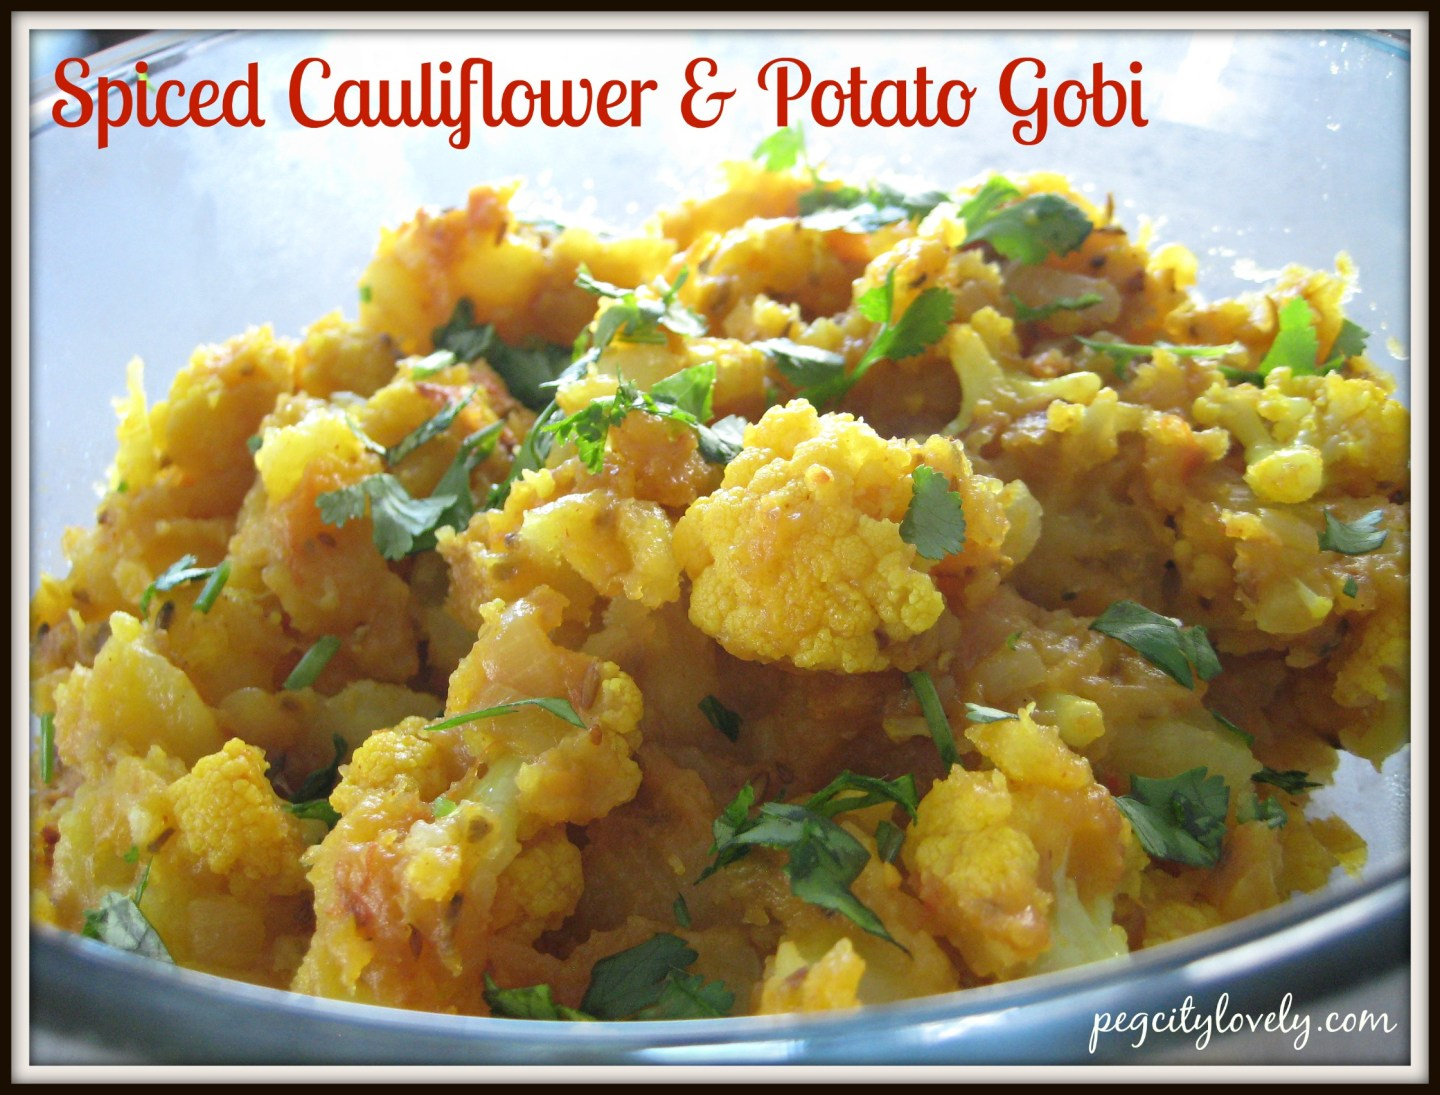 Spiced Cauliflower and Potato Gobi